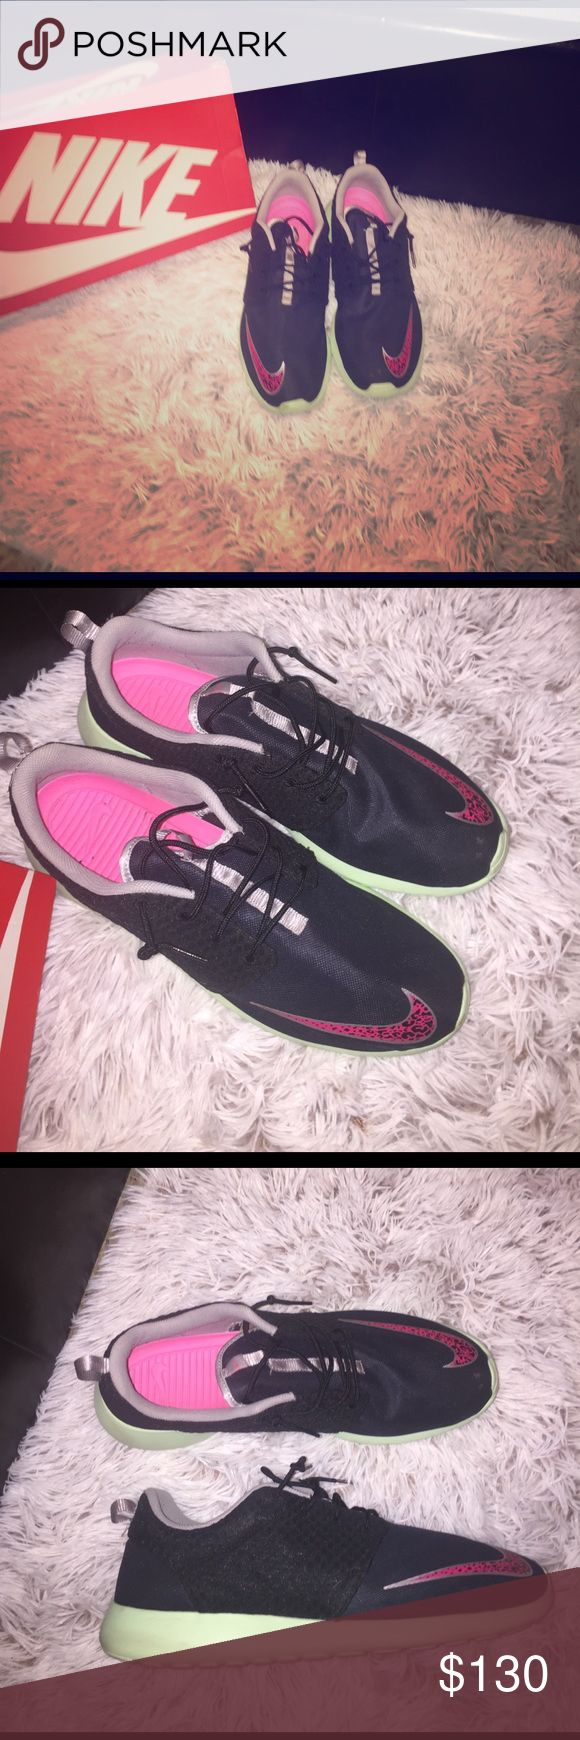 Yeezy Roshe Run Nike Rosherun FB 'Yeezy'   Size 15 comes with box worn once black/pink mint soles Nike Shoes Sneakers